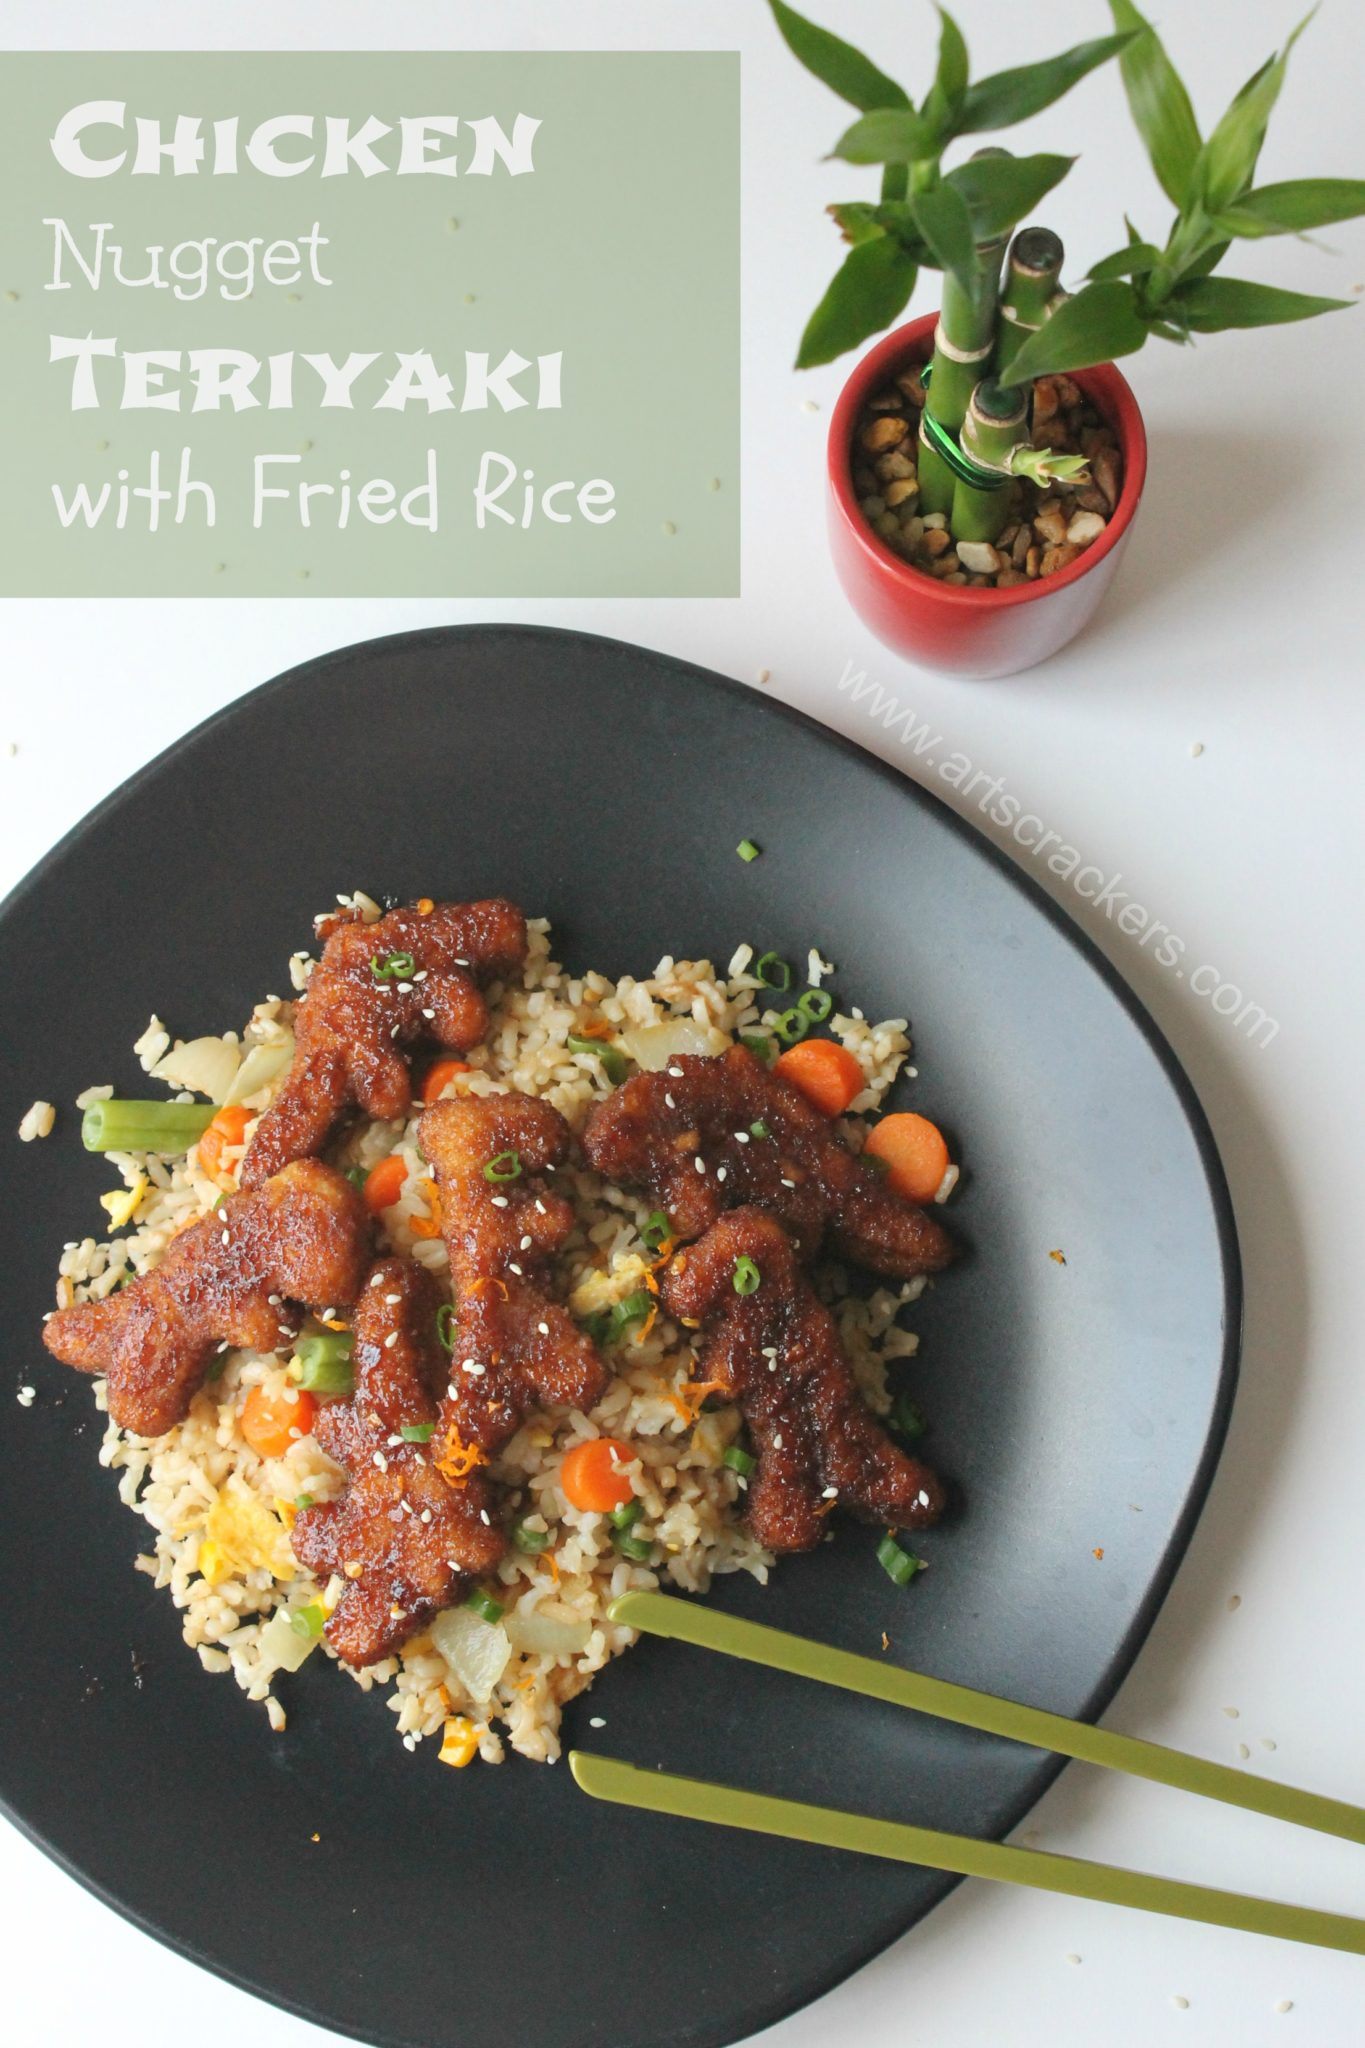 This Chicken Nugget Teriyaki with Fried Rice Recipe is delicious and fun for the whole family. This can be made with fresh chicken nuggets, frozen chicken nuggets, or just regular pieces of chicken | Chicken Recipes | Chicken Nuggets | Chicken Teriyaki | Asian Recipes | Fried Rice | Chinese Food | Chinese Food Recipes | Teriyaki Recipe | Teriyaki Sauce | Kid Friendly Recipes | Soy Sauce